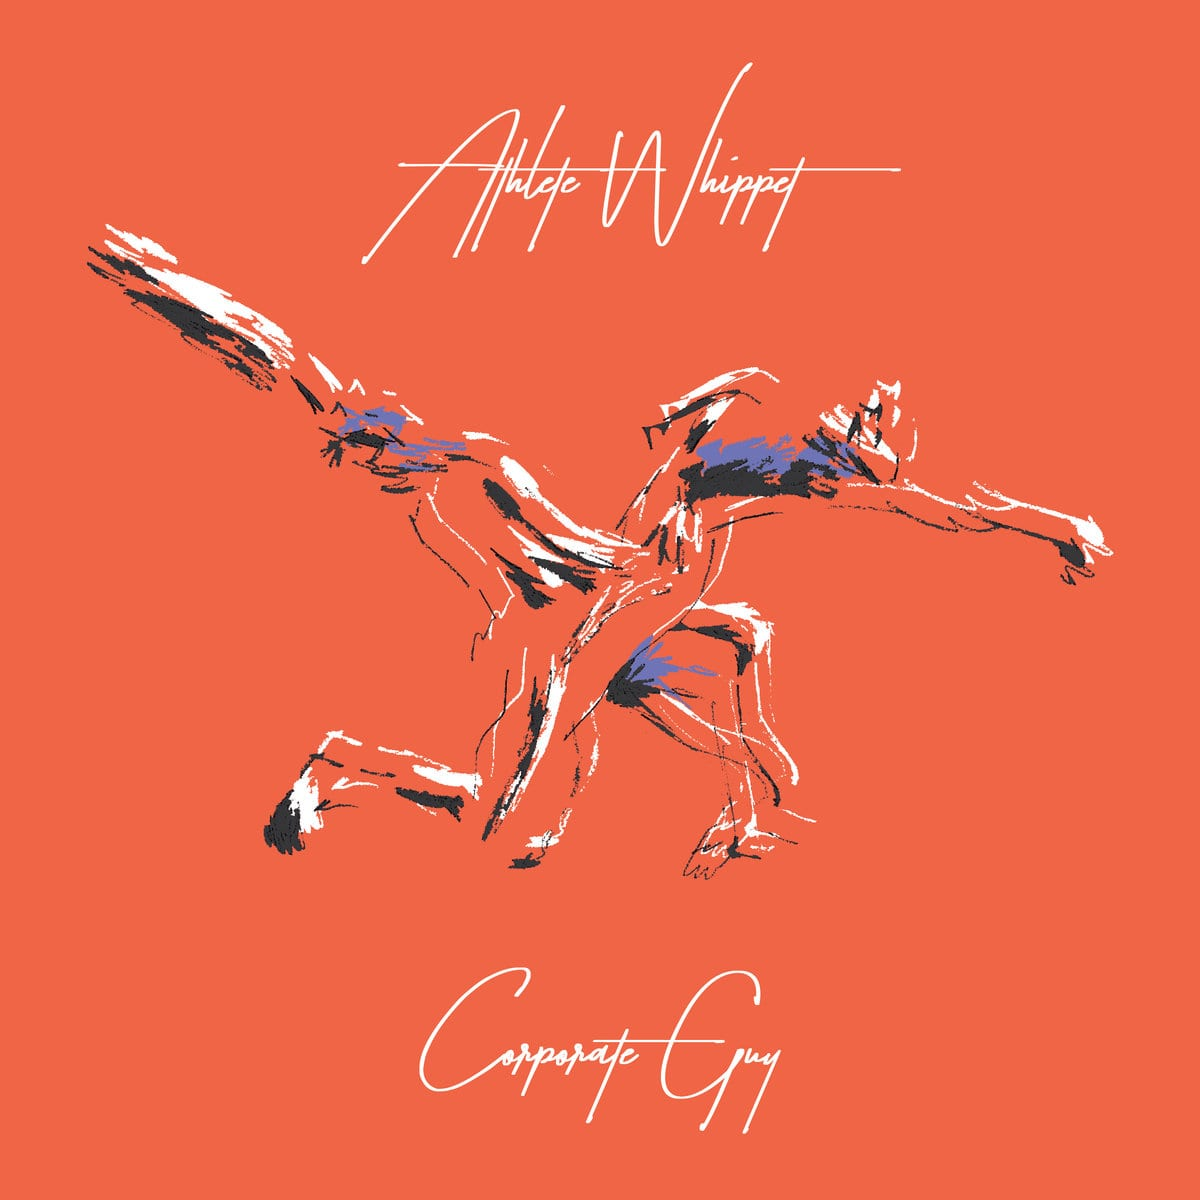 Premiere: Athlete Whippet – Corporate Guy (Baltra's 9 to 5 Remix)